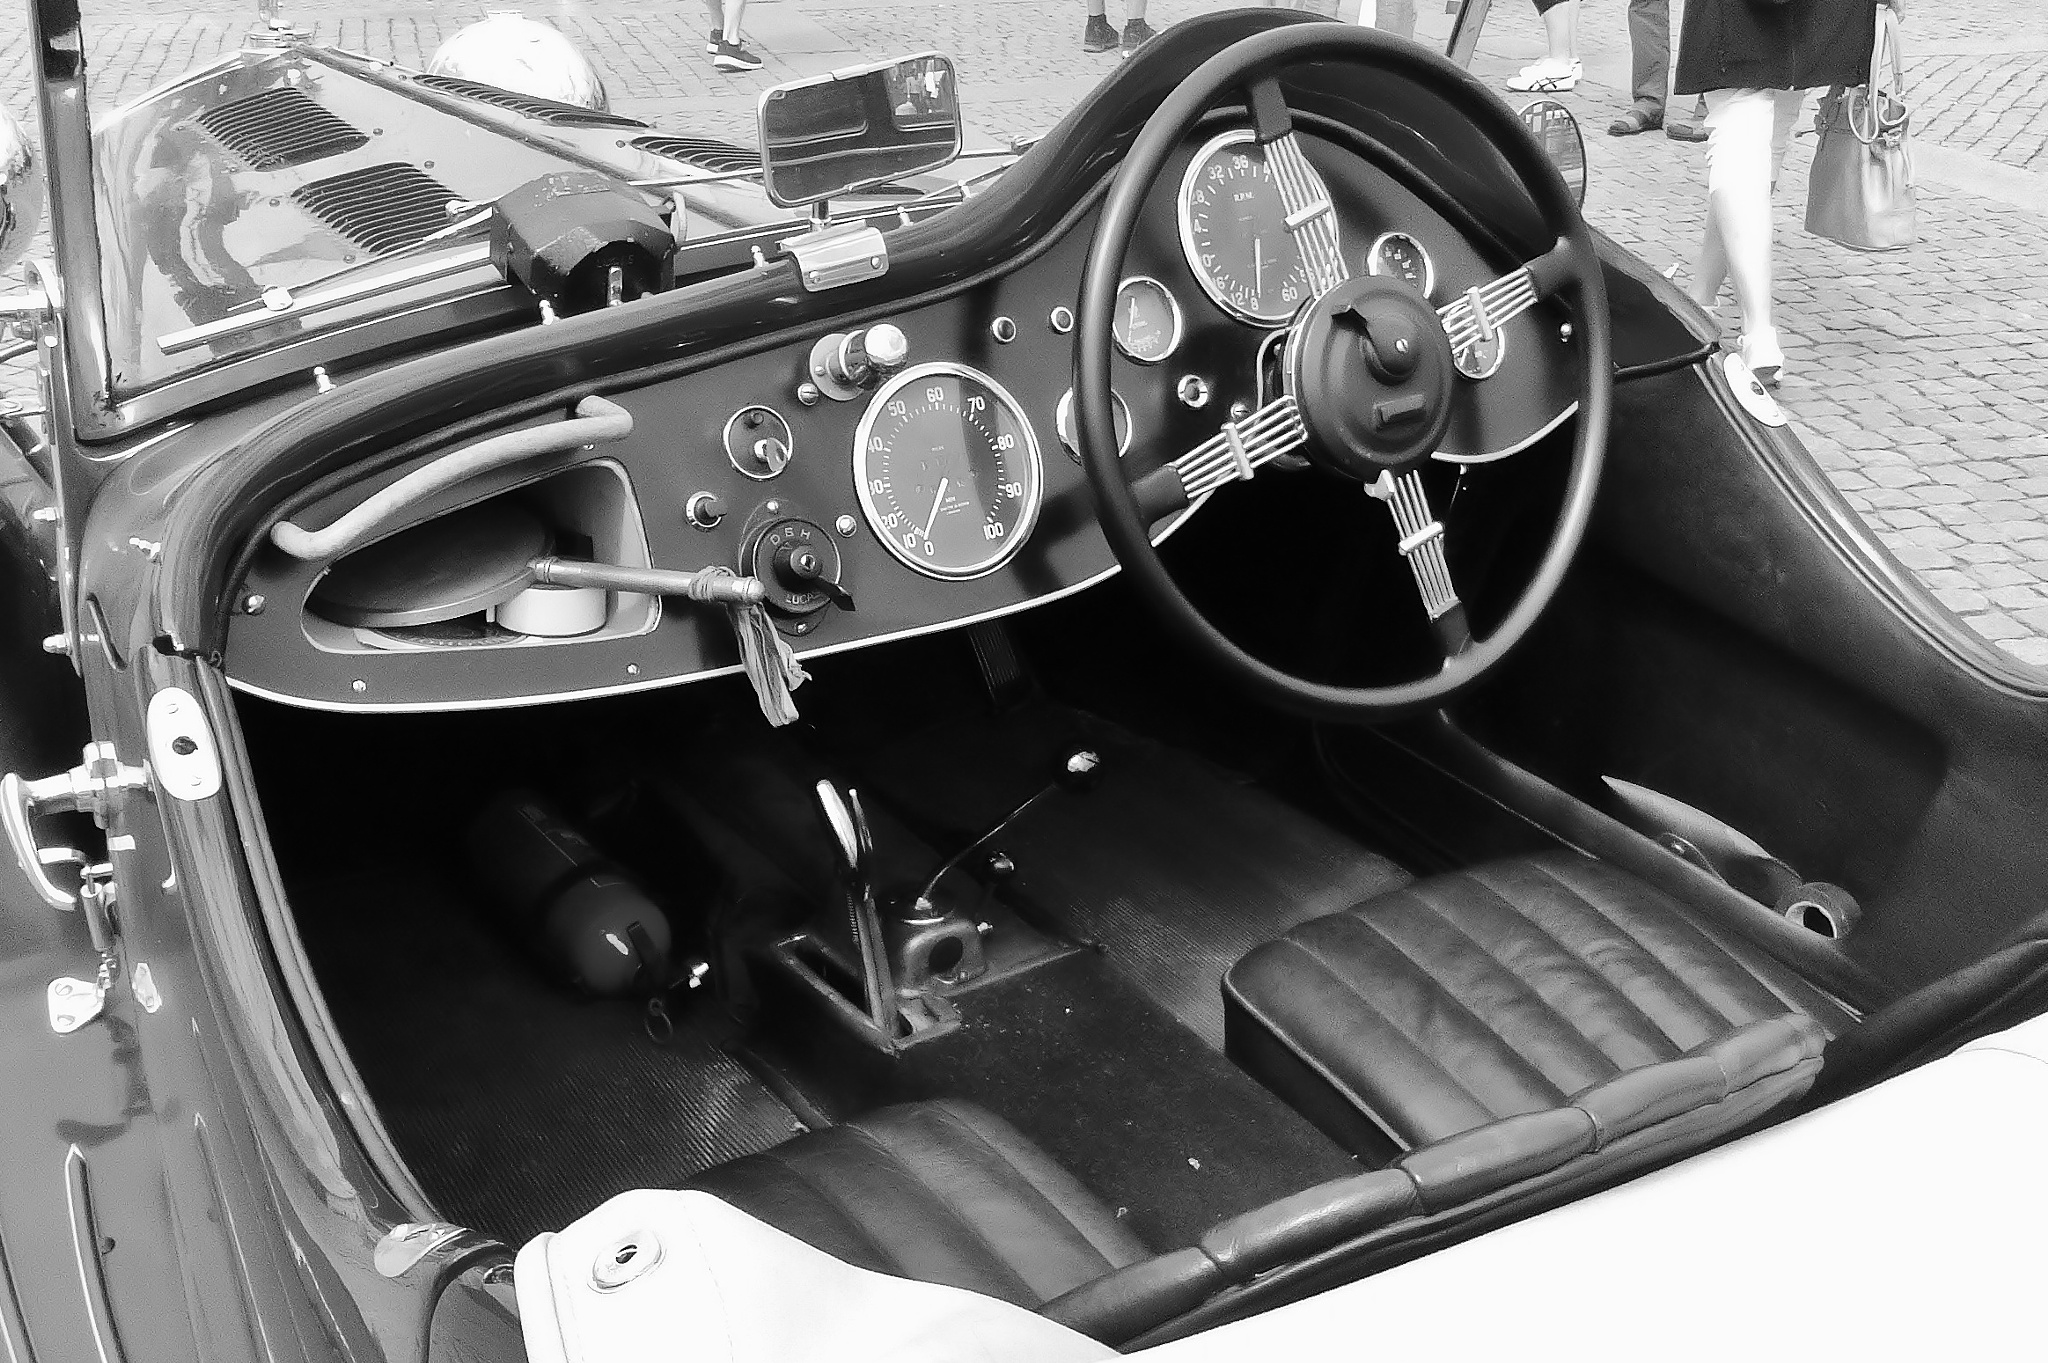 Classic MG roadster interior, no airbag, no GPS, no cellphone, no radio, but handmirror by rolf persson